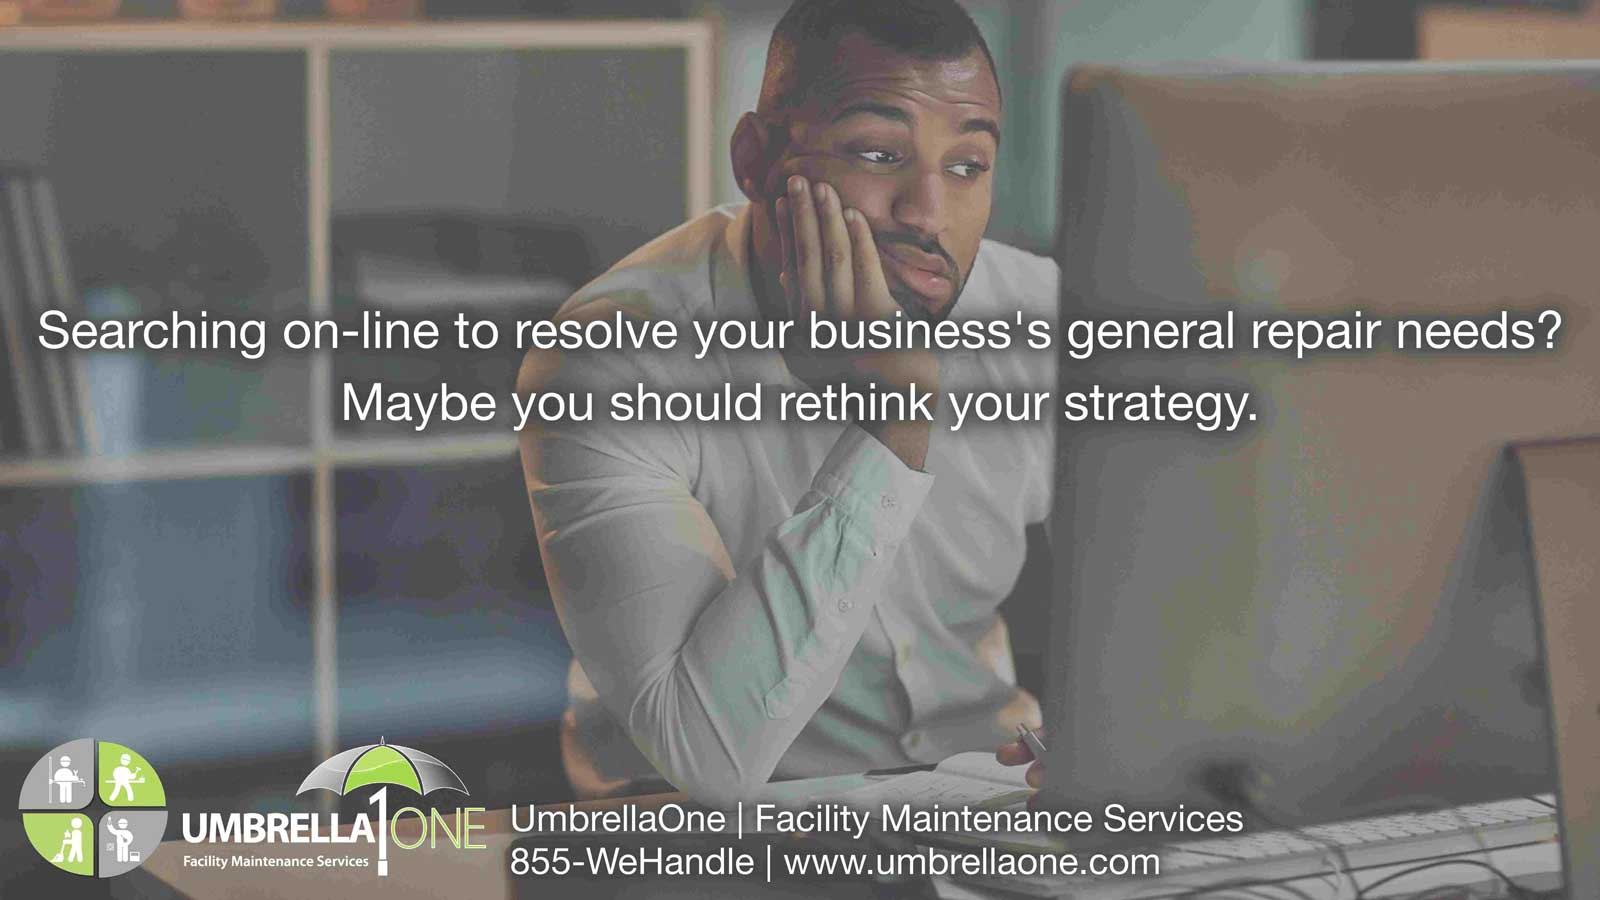 caption: searching online to resolve your business' general repair needs? Maybe you should rethink your strategy